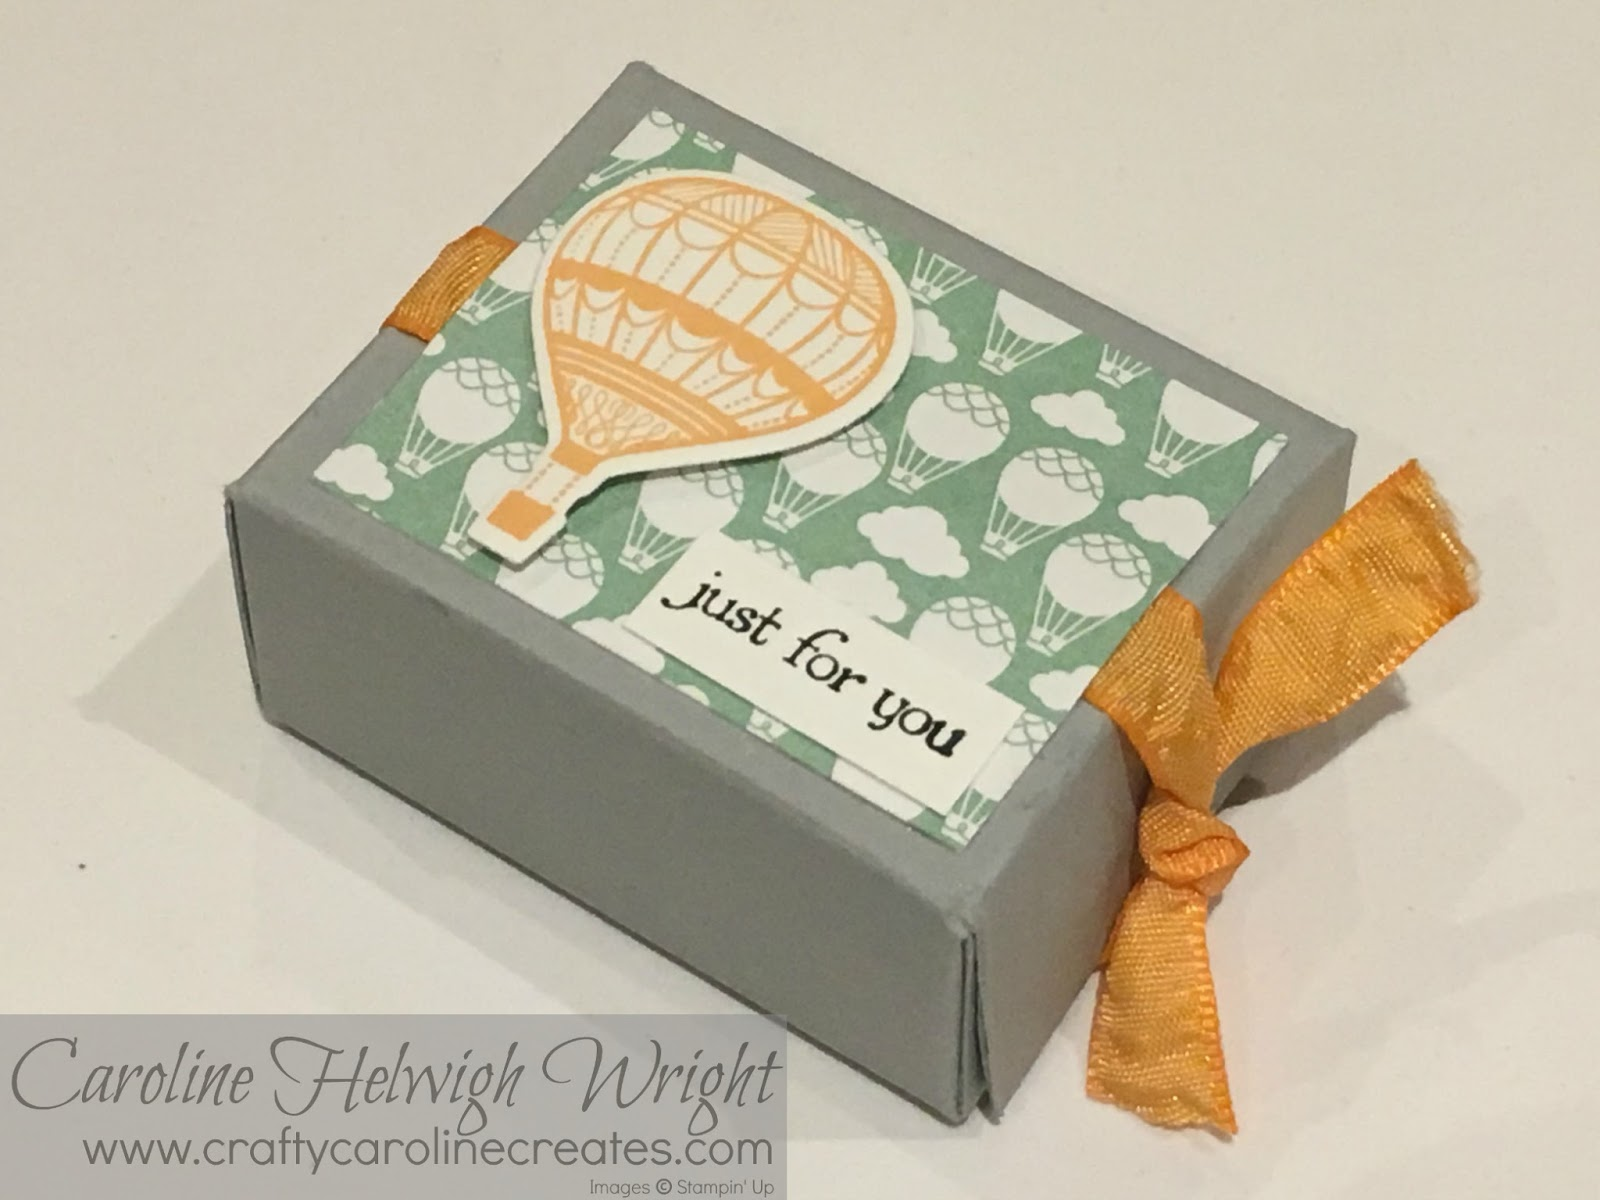 Craftycarolinecreates sweet little gift box using lift me up by sweet little gift box using lift me up by stampin up new products negle Gallery